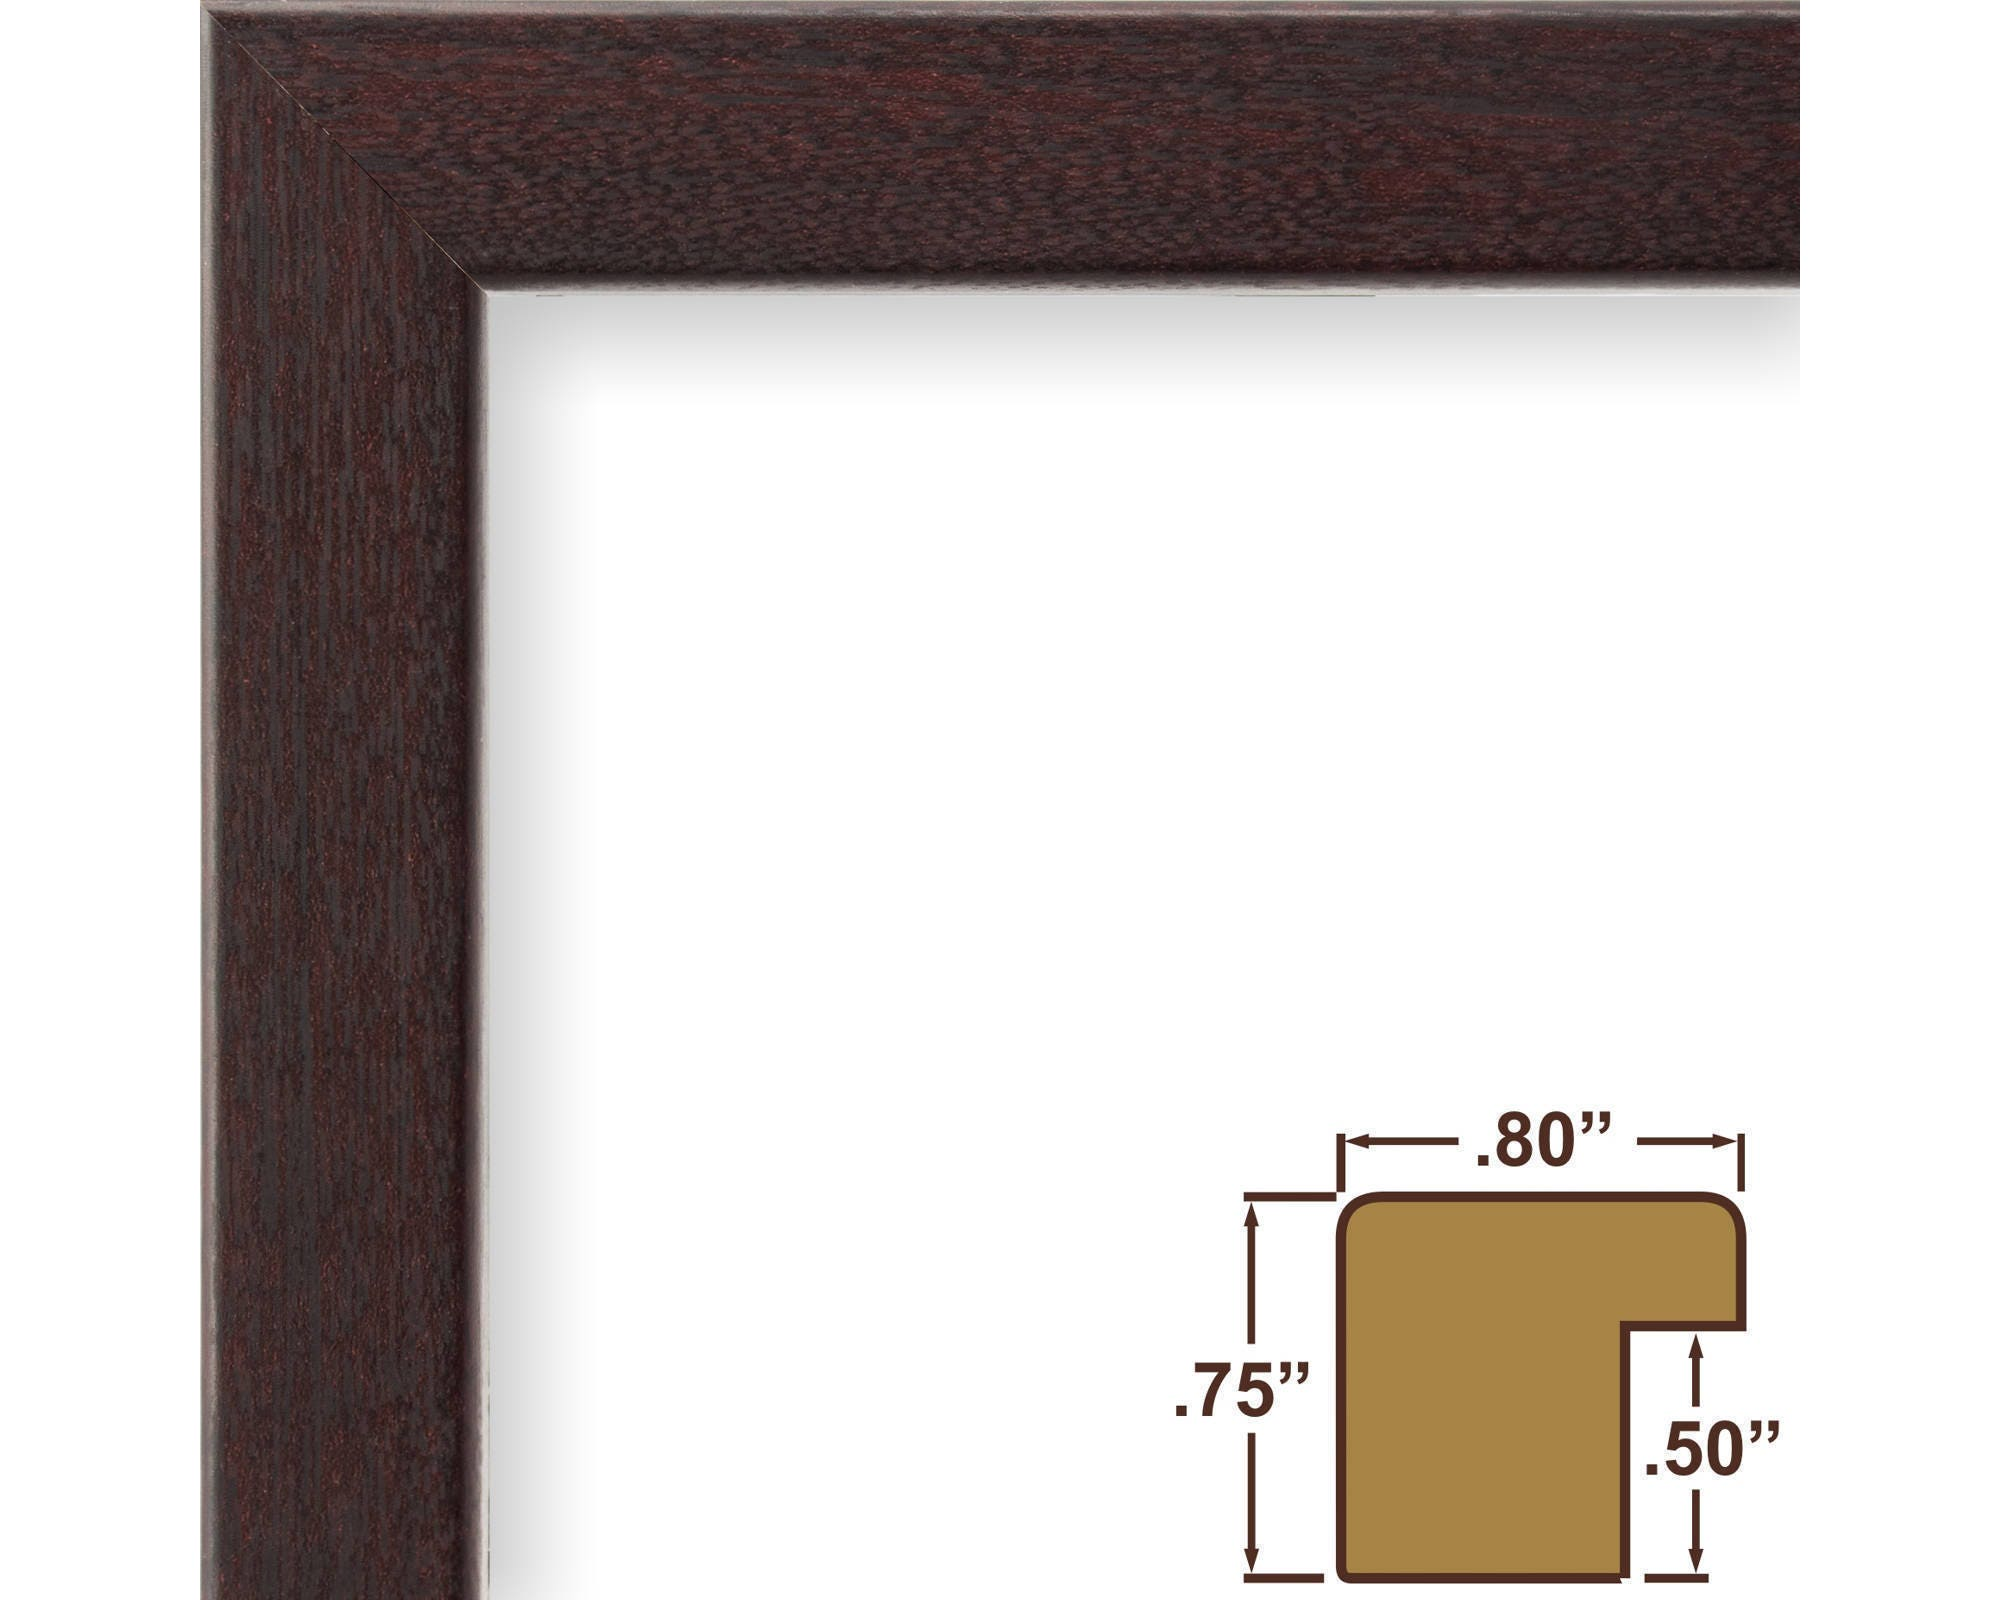 Craig frames 19x25 inch burgundy walnut picture frame bauhaus sold by craigframes jeuxipadfo Image collections